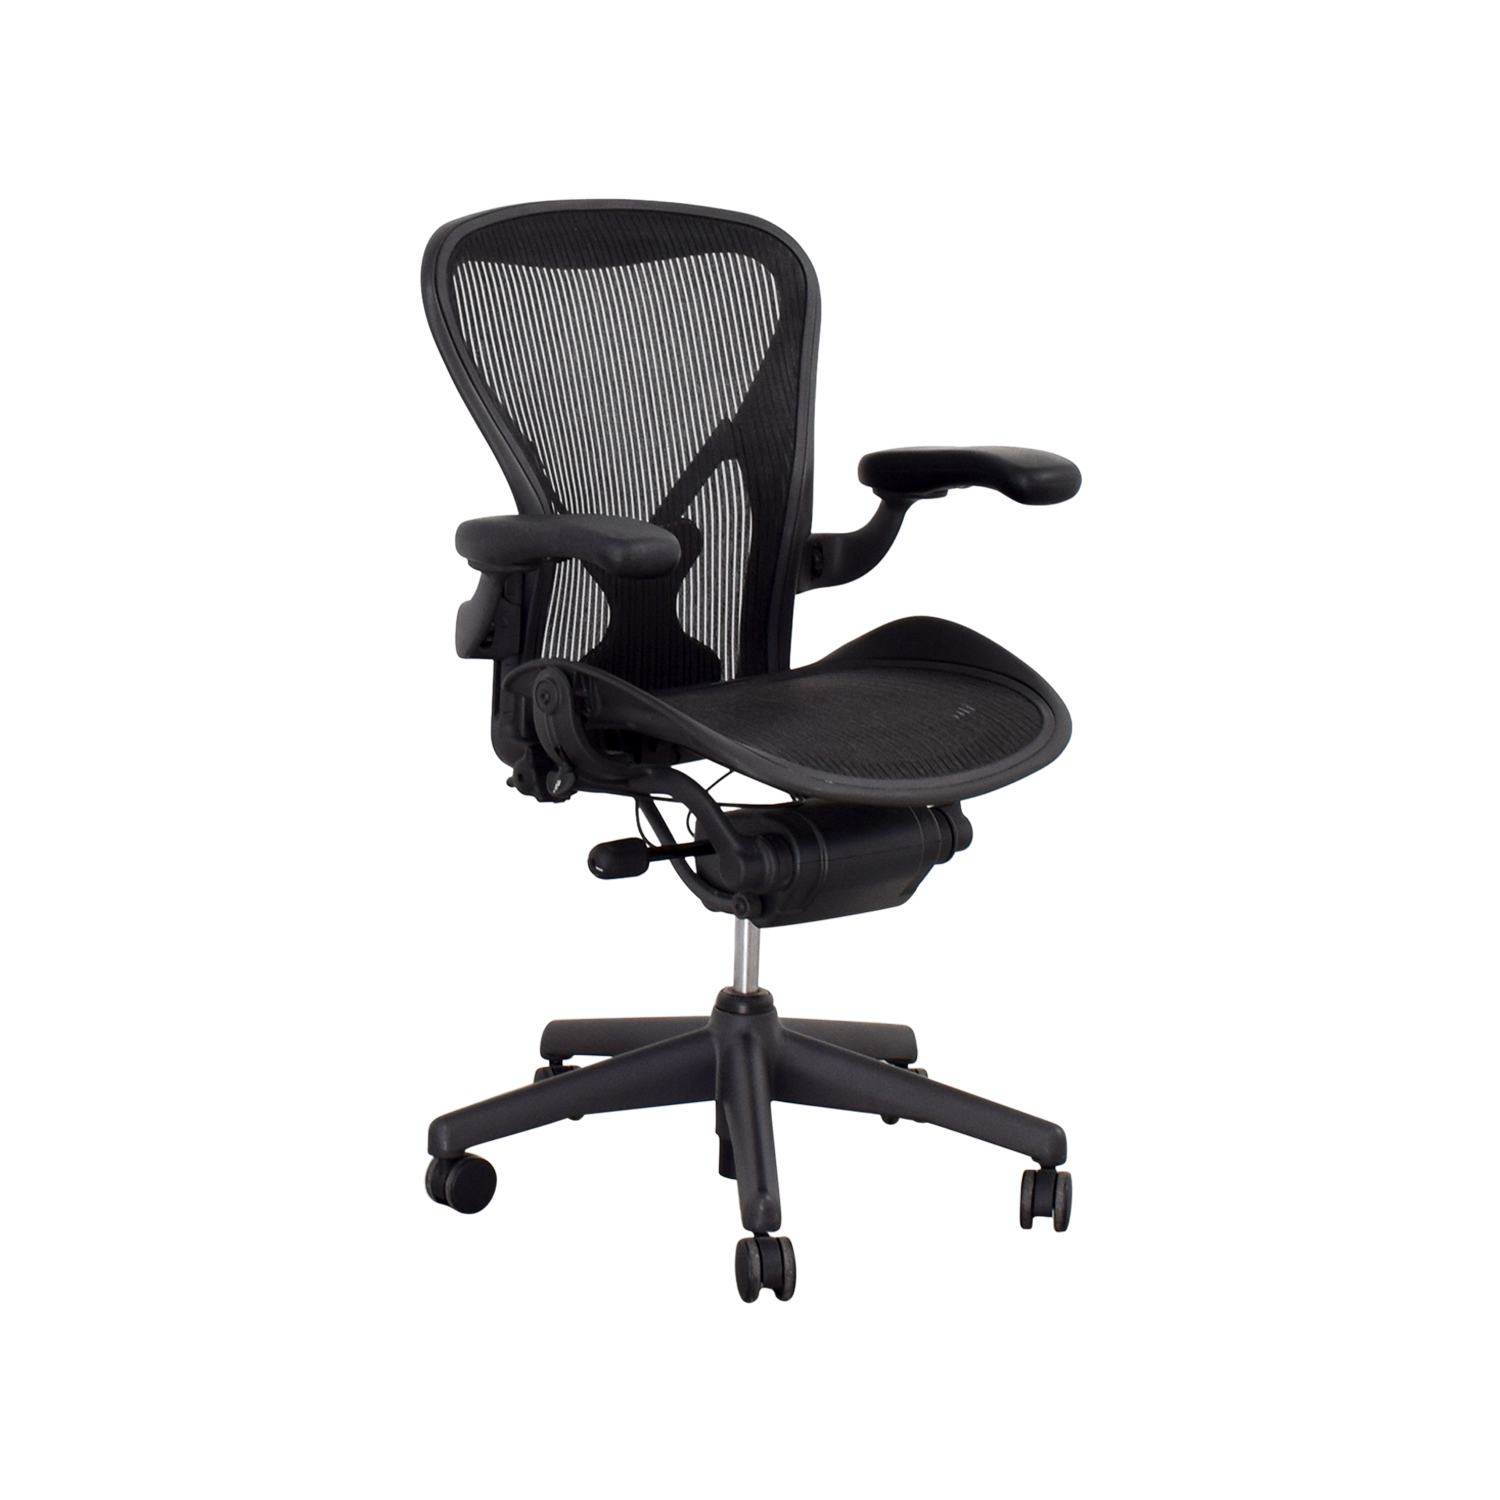 ... shop Herman Miller Herman Miller Aeron Task Chair online ...  sc 1 st  Furnishare & 71% OFF - Herman Miller Herman Miller Aeron Task Chair / Chairs